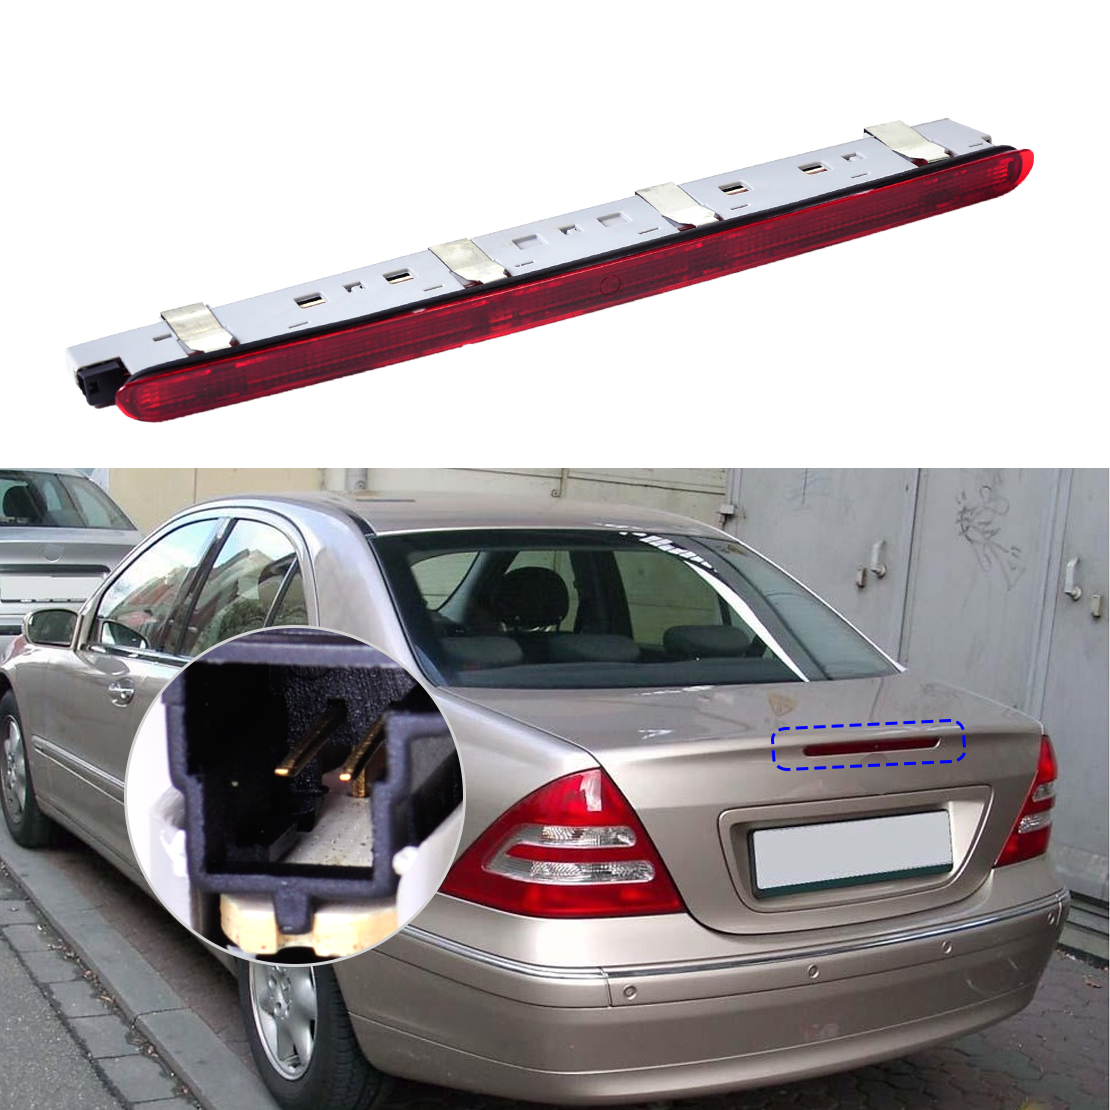 CITALL 2038201456 2038200156 Rear Tail Stop Lamp Third Brake Light fit for Mercedes W203 C230 C240 C280 C350 2000-2005 2006 2007 free shipping car accessories 2000 2004 led stop lamp 3rd brake tail light for mercedes c class w203 oem 2038201456